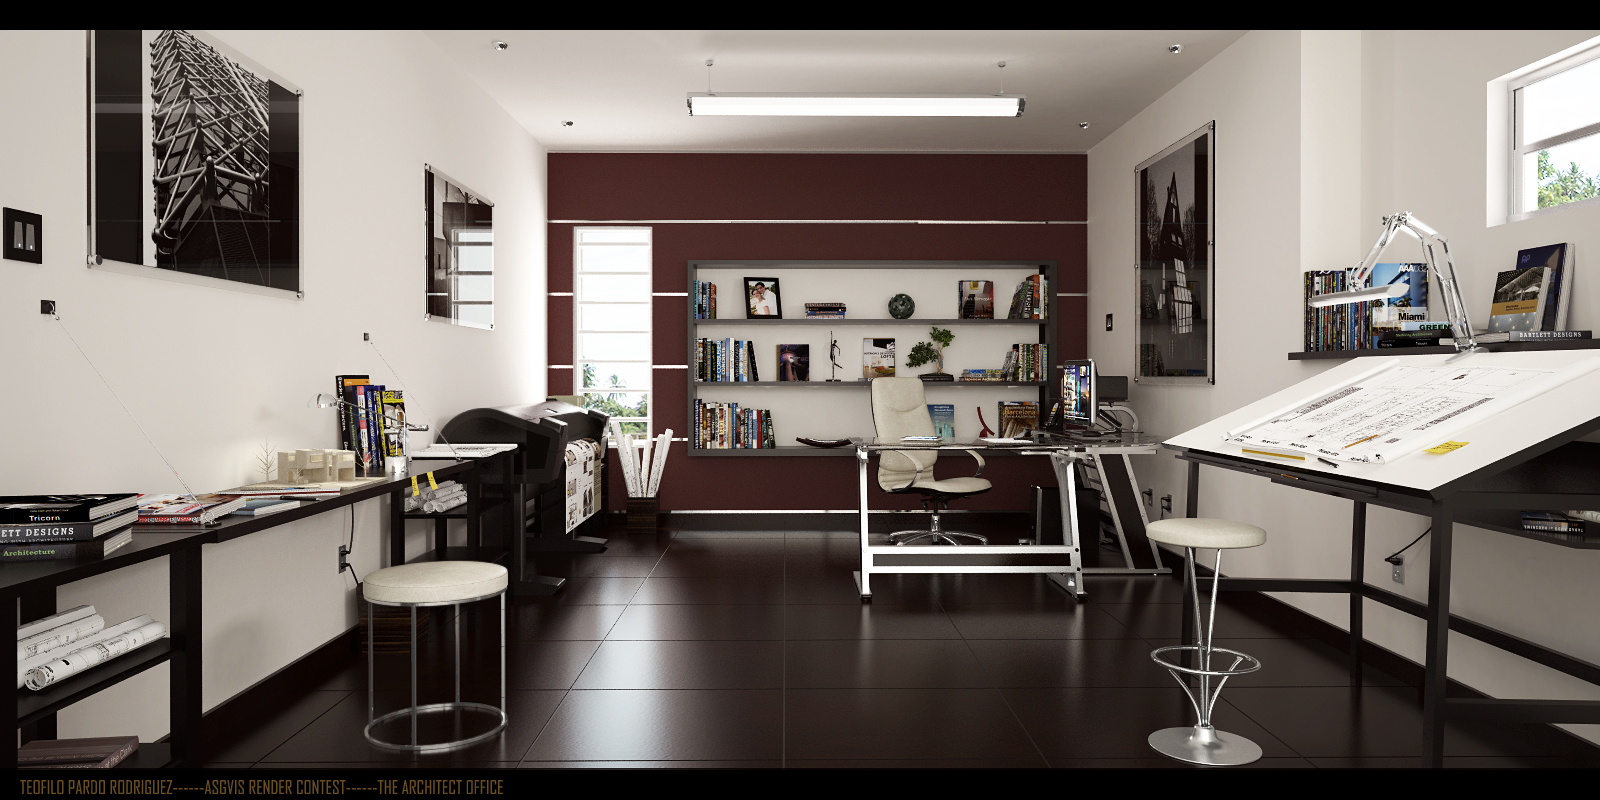 http://www.home-designing.com/wp-content/uploads/2011/01/architect-drafting-office-contemporary1.jpg